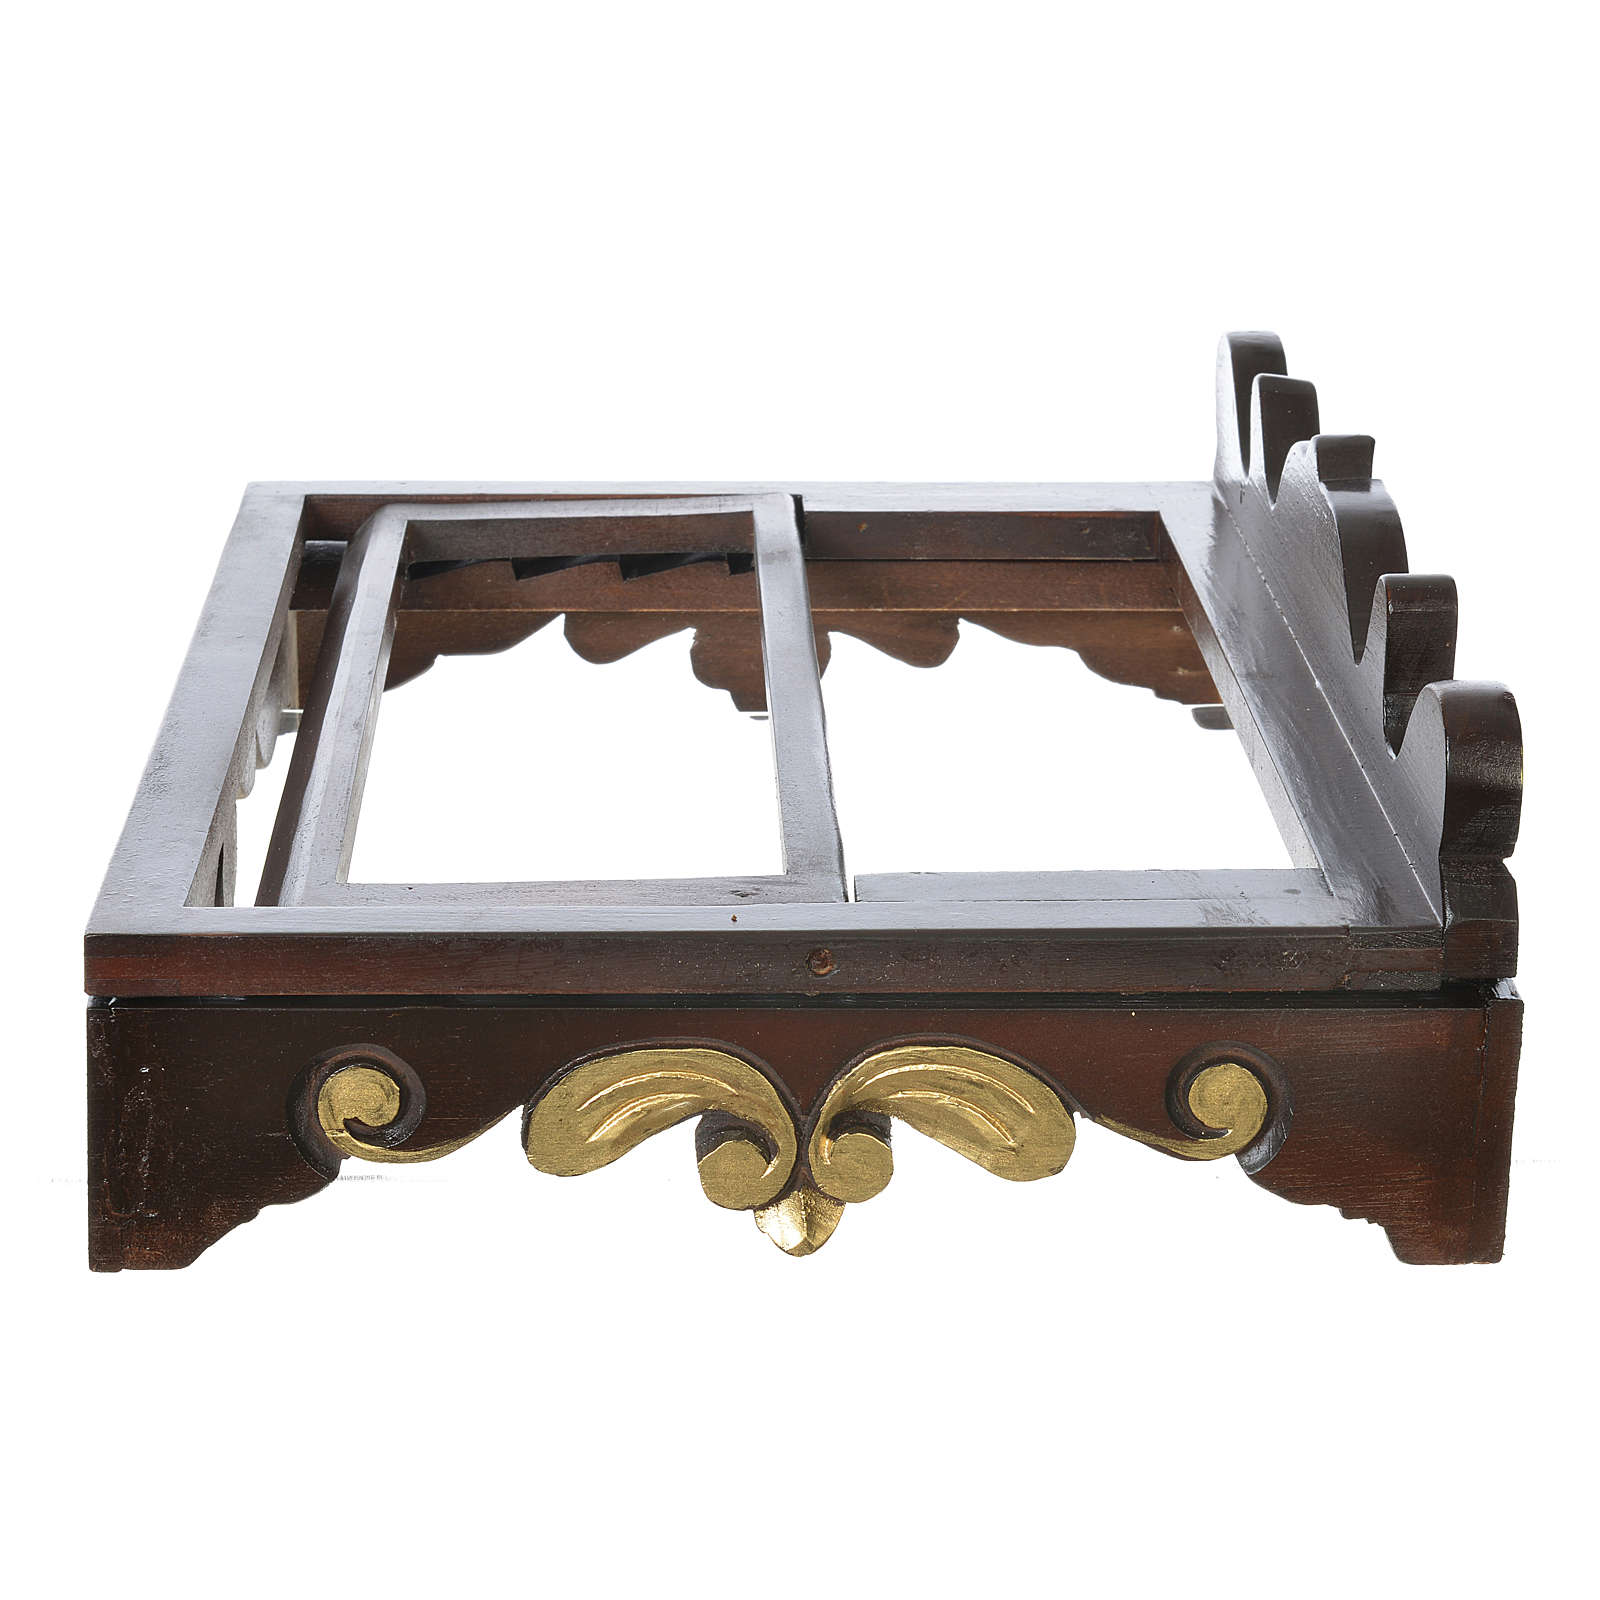 Table lectern in wood, 1700 style 40x30 cm 4